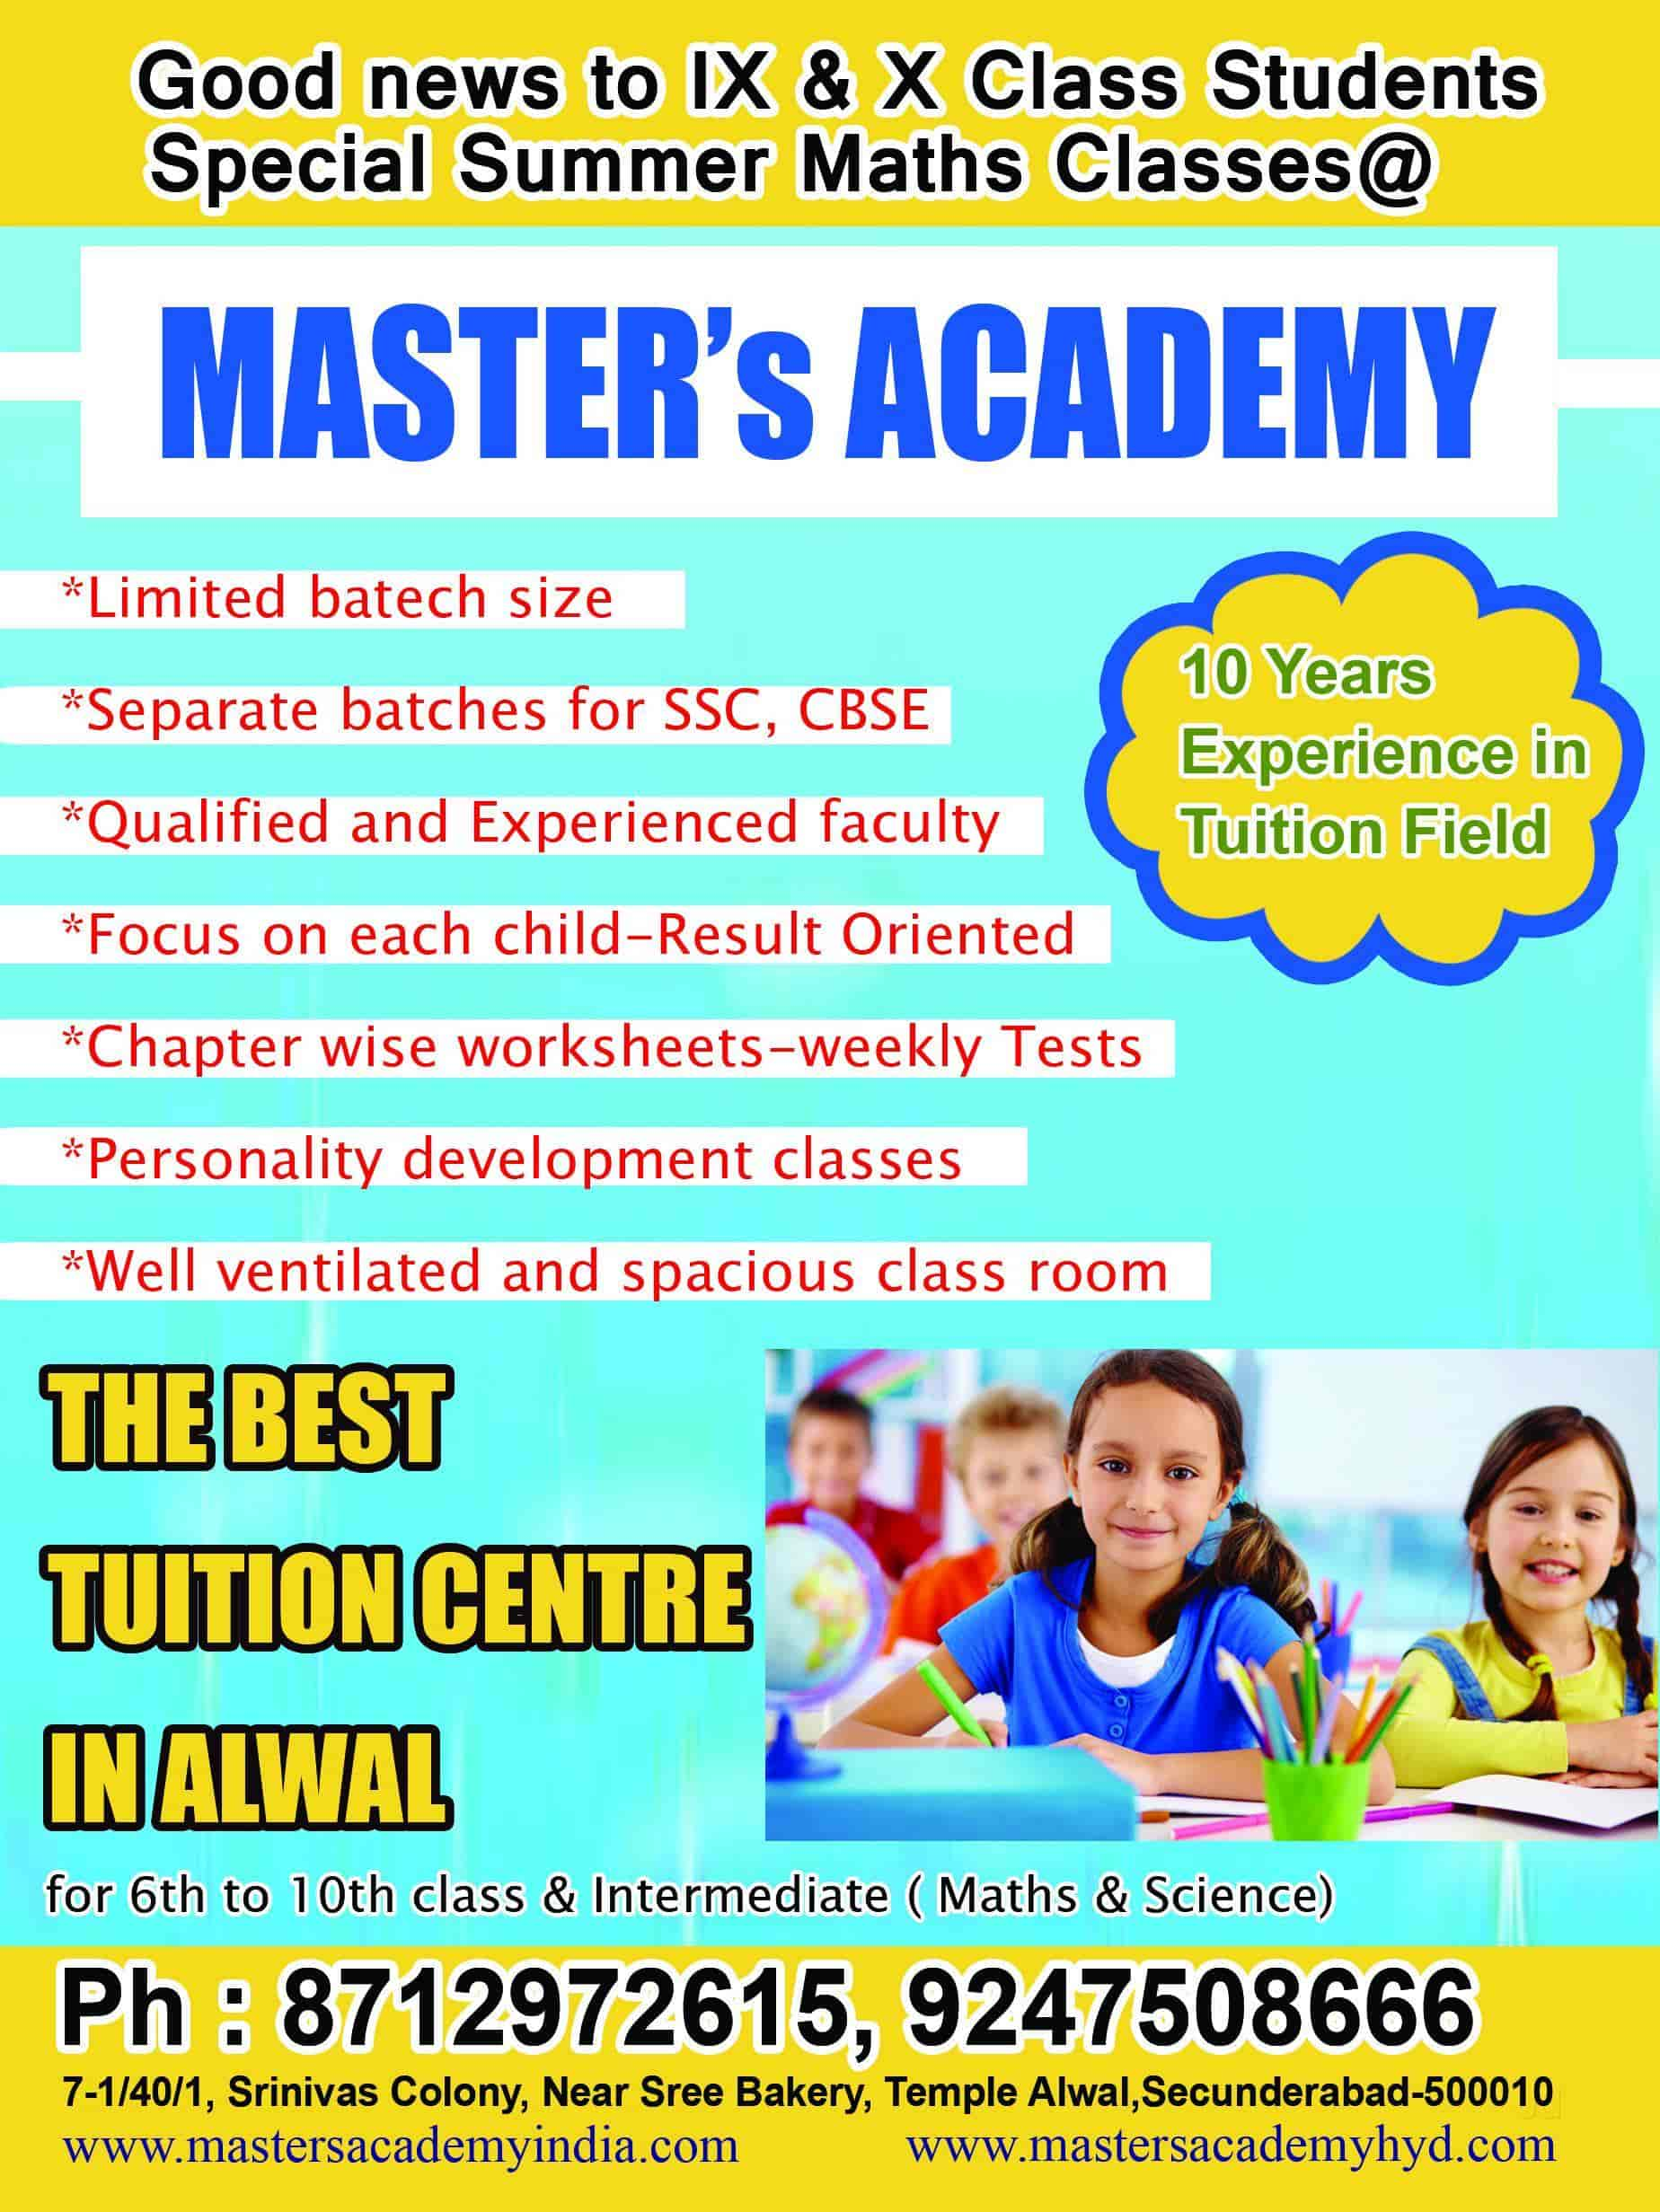 Masters Academy, Alwal - Abacus Classes in Hyderabad - Justdial